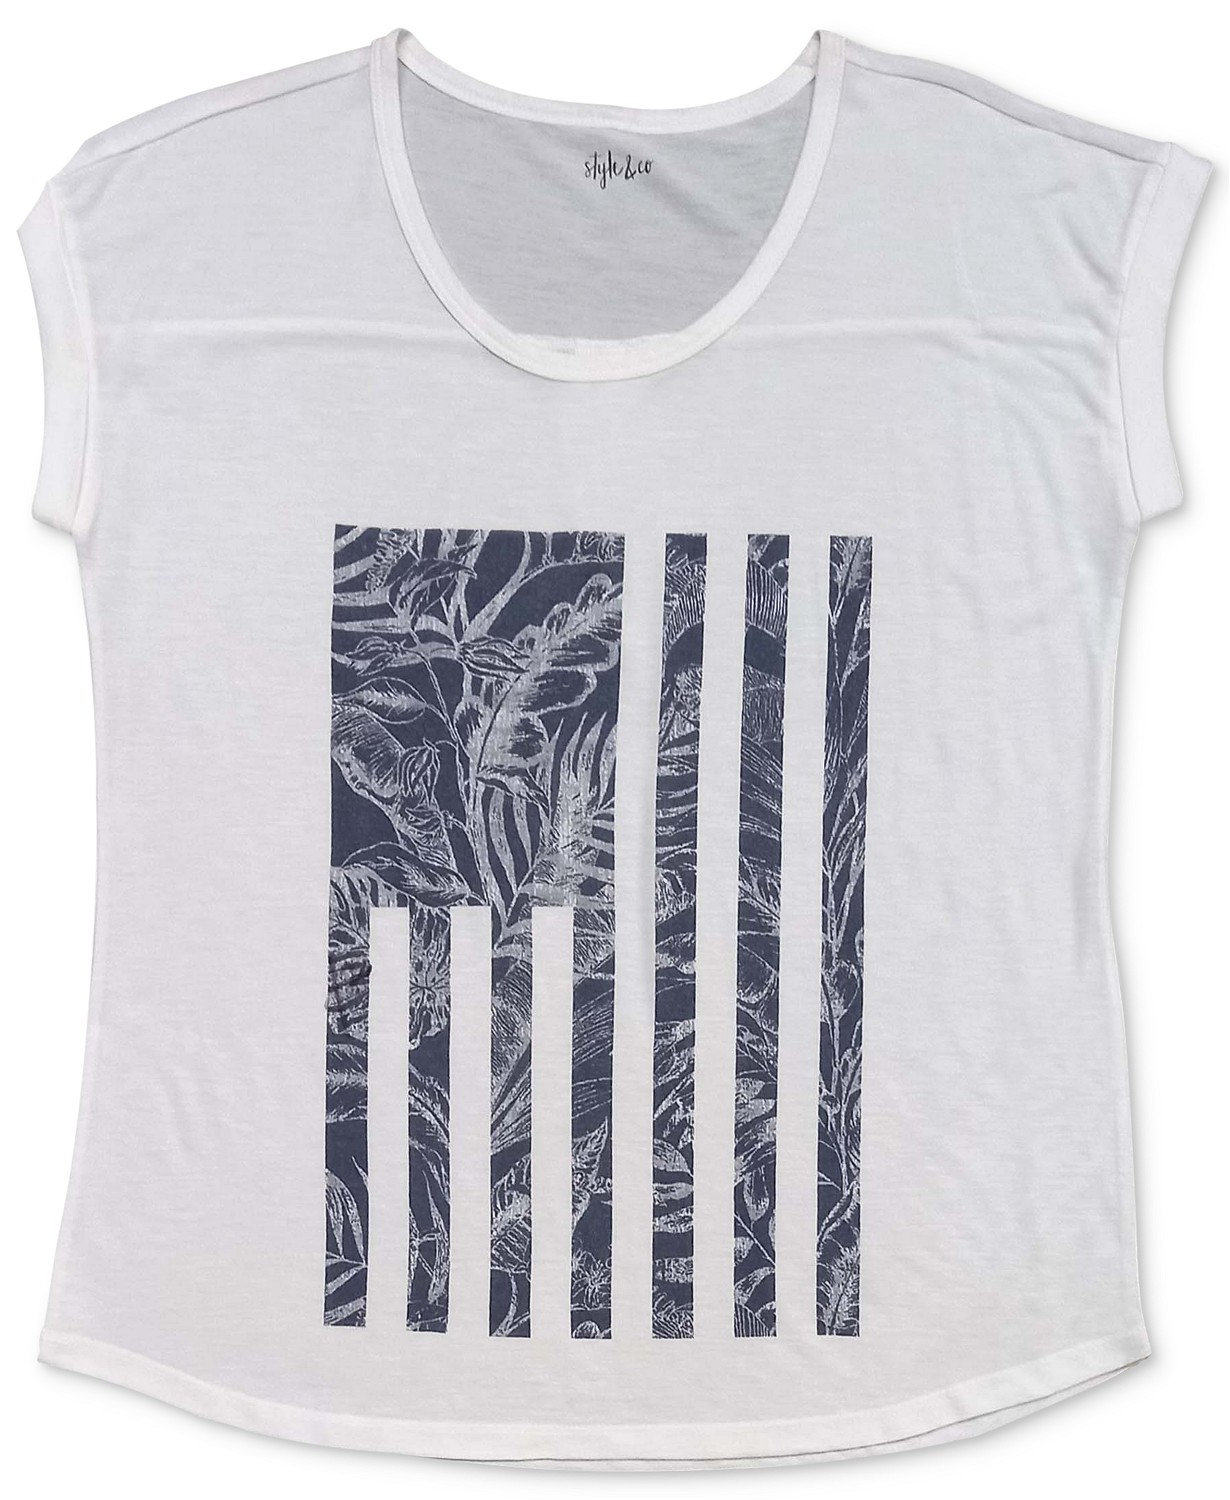 Style & Co Tropical Flag Graphic T-Shirt